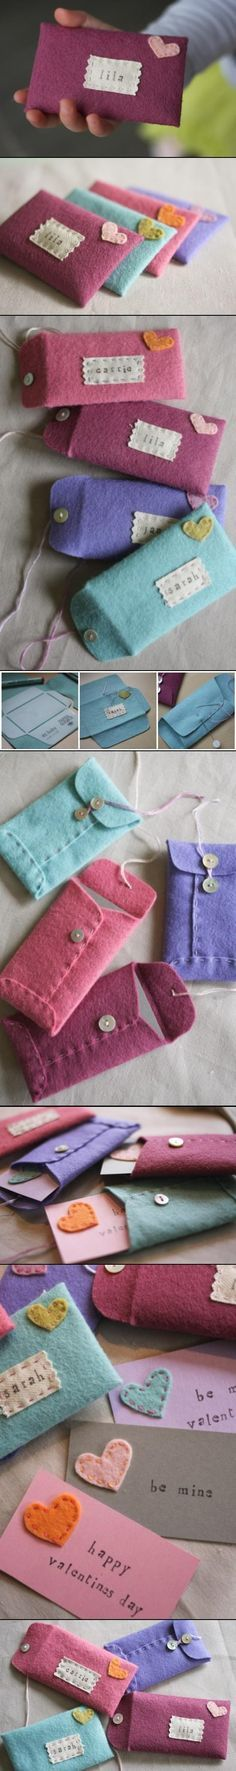 Make personalized felt pouches with this easy to follow project!